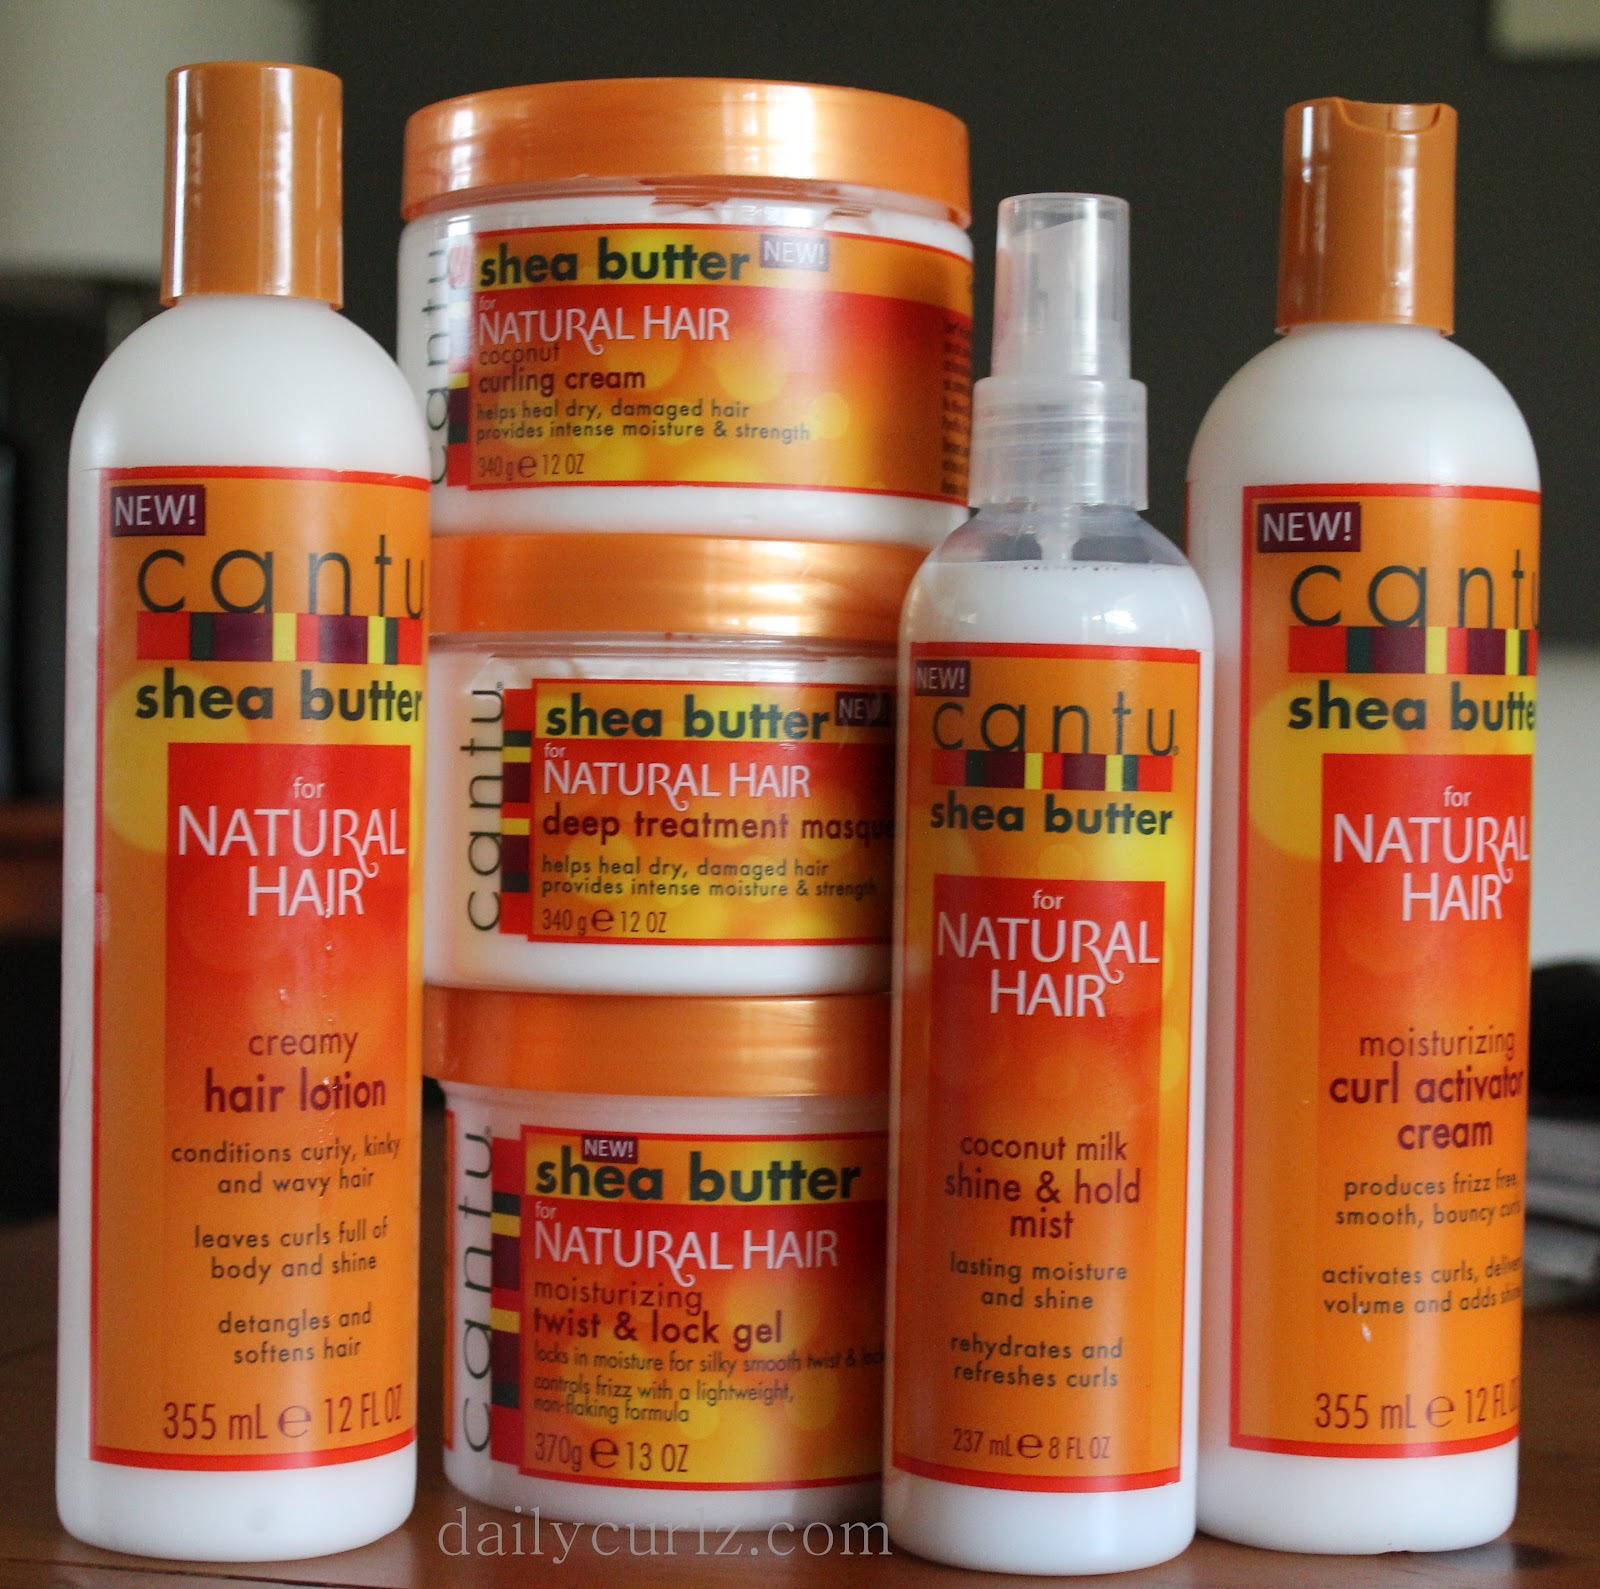 Most Significant Heat Protectants For Natural Hair Clues The